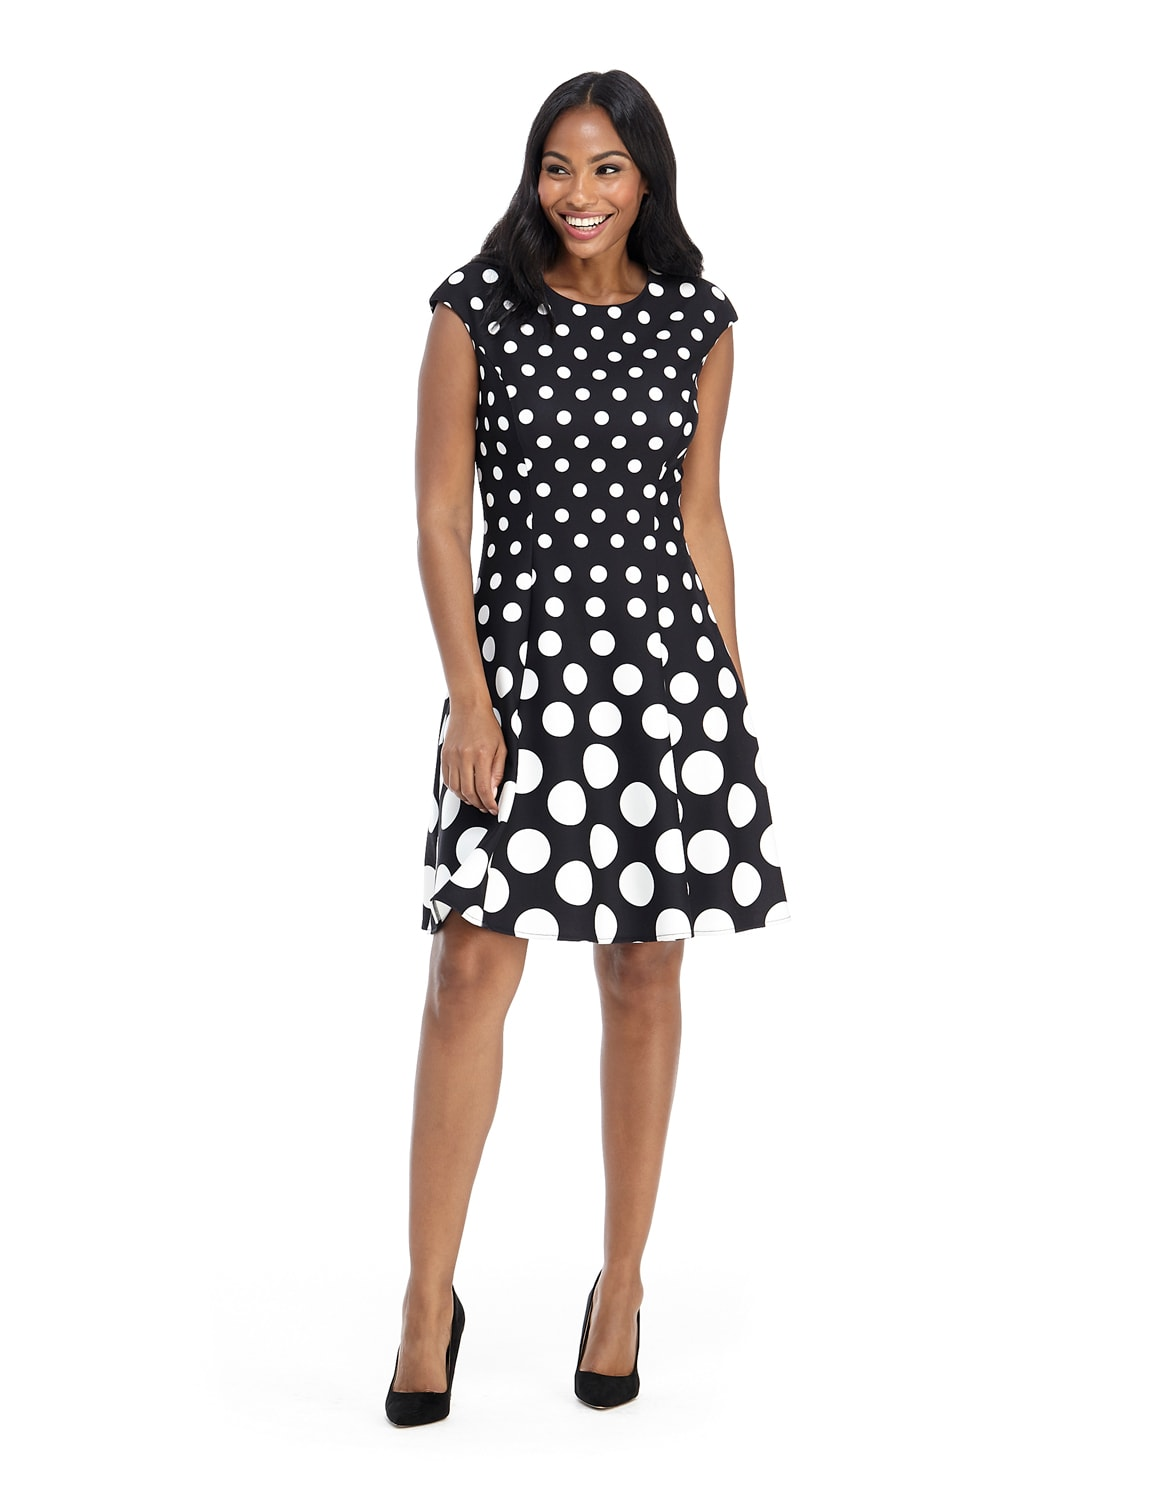 Cap Sleeve Graduated Dot Dress - Black/White - Front